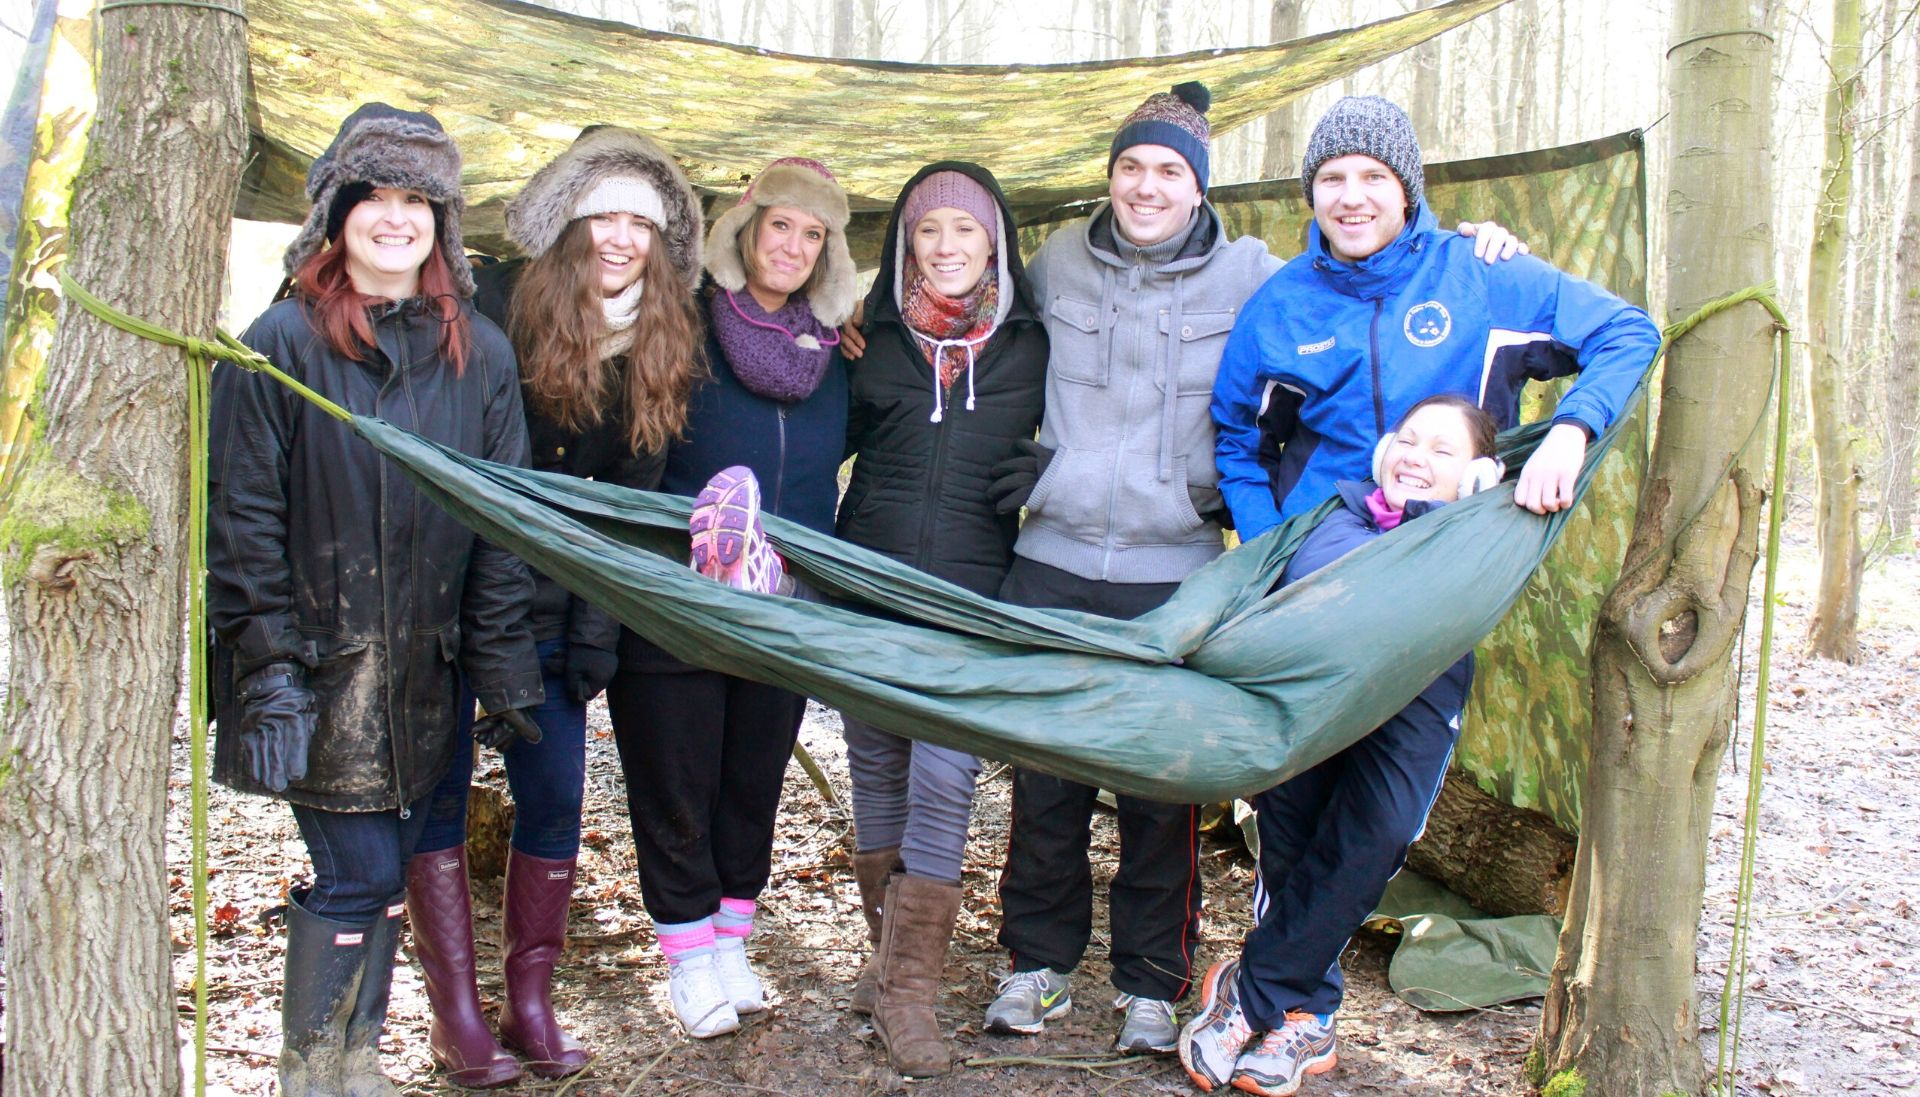 John Lewis Staff corportate team building, using hammocks in the wood